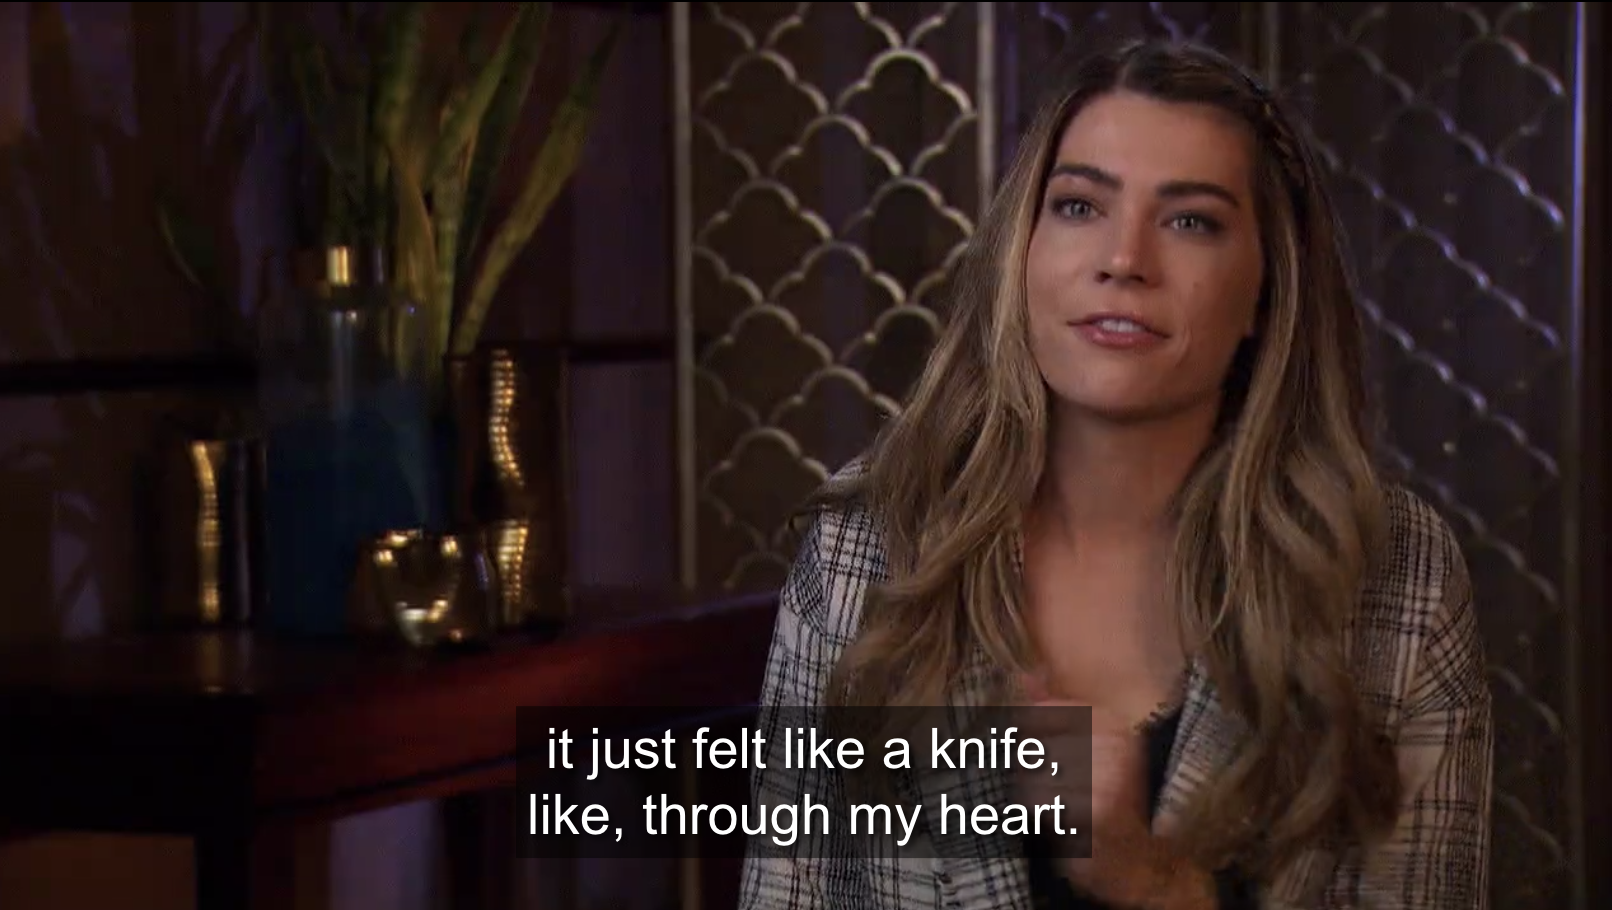 """Sarah talking about her relationship with Matt, saying """"it just felt like a knife, like, through my heart"""""""